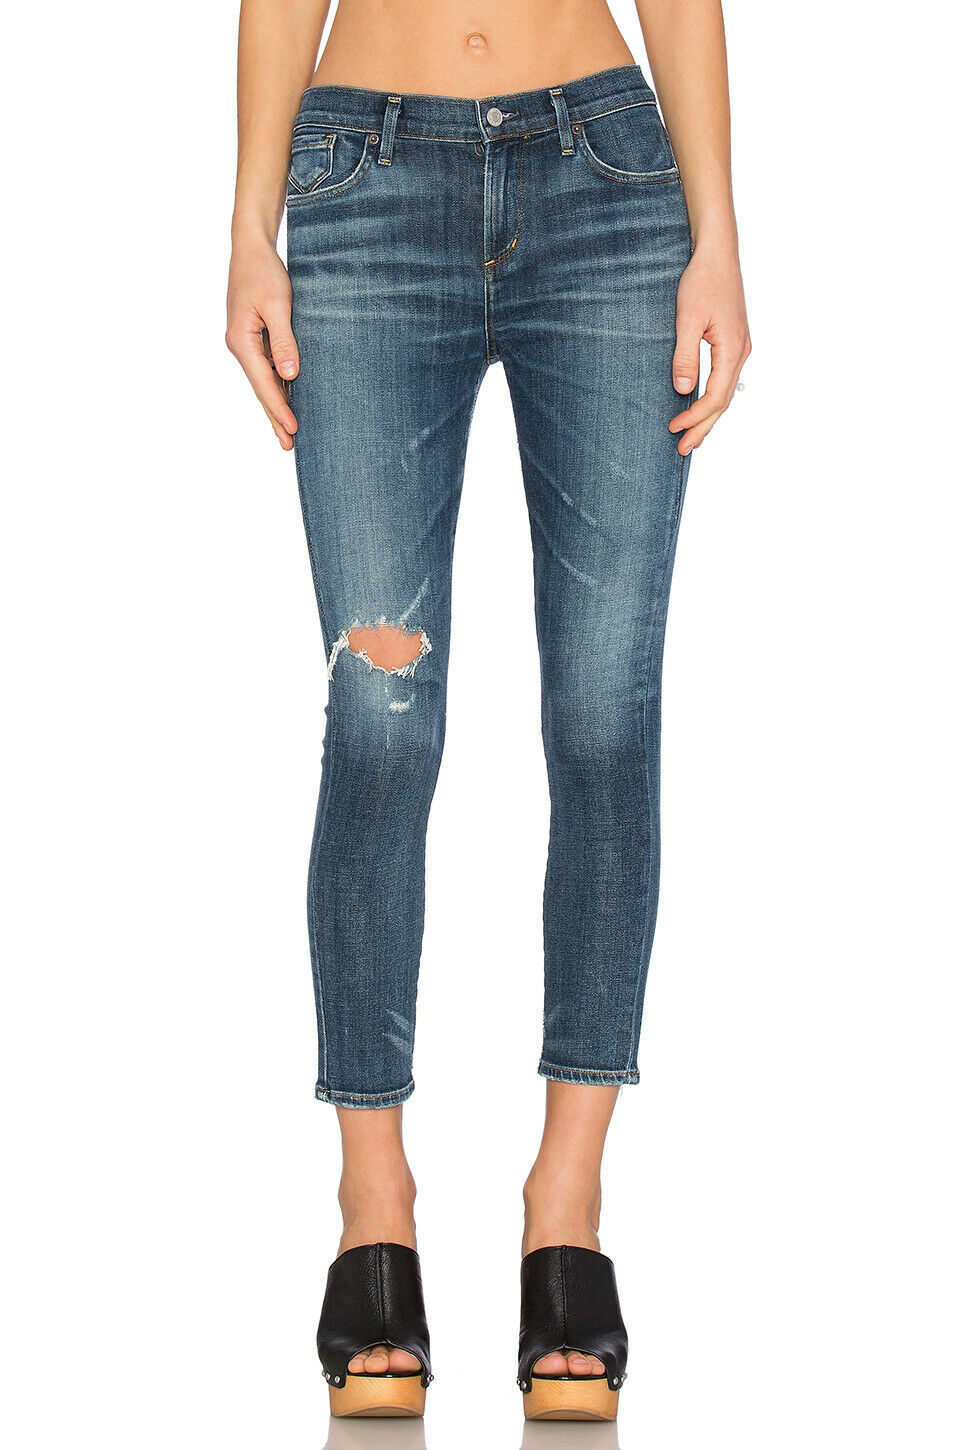 AgoldE COLETTE CROPPED SKINNY JEANS IN STARWOOD WASH 26 NWT